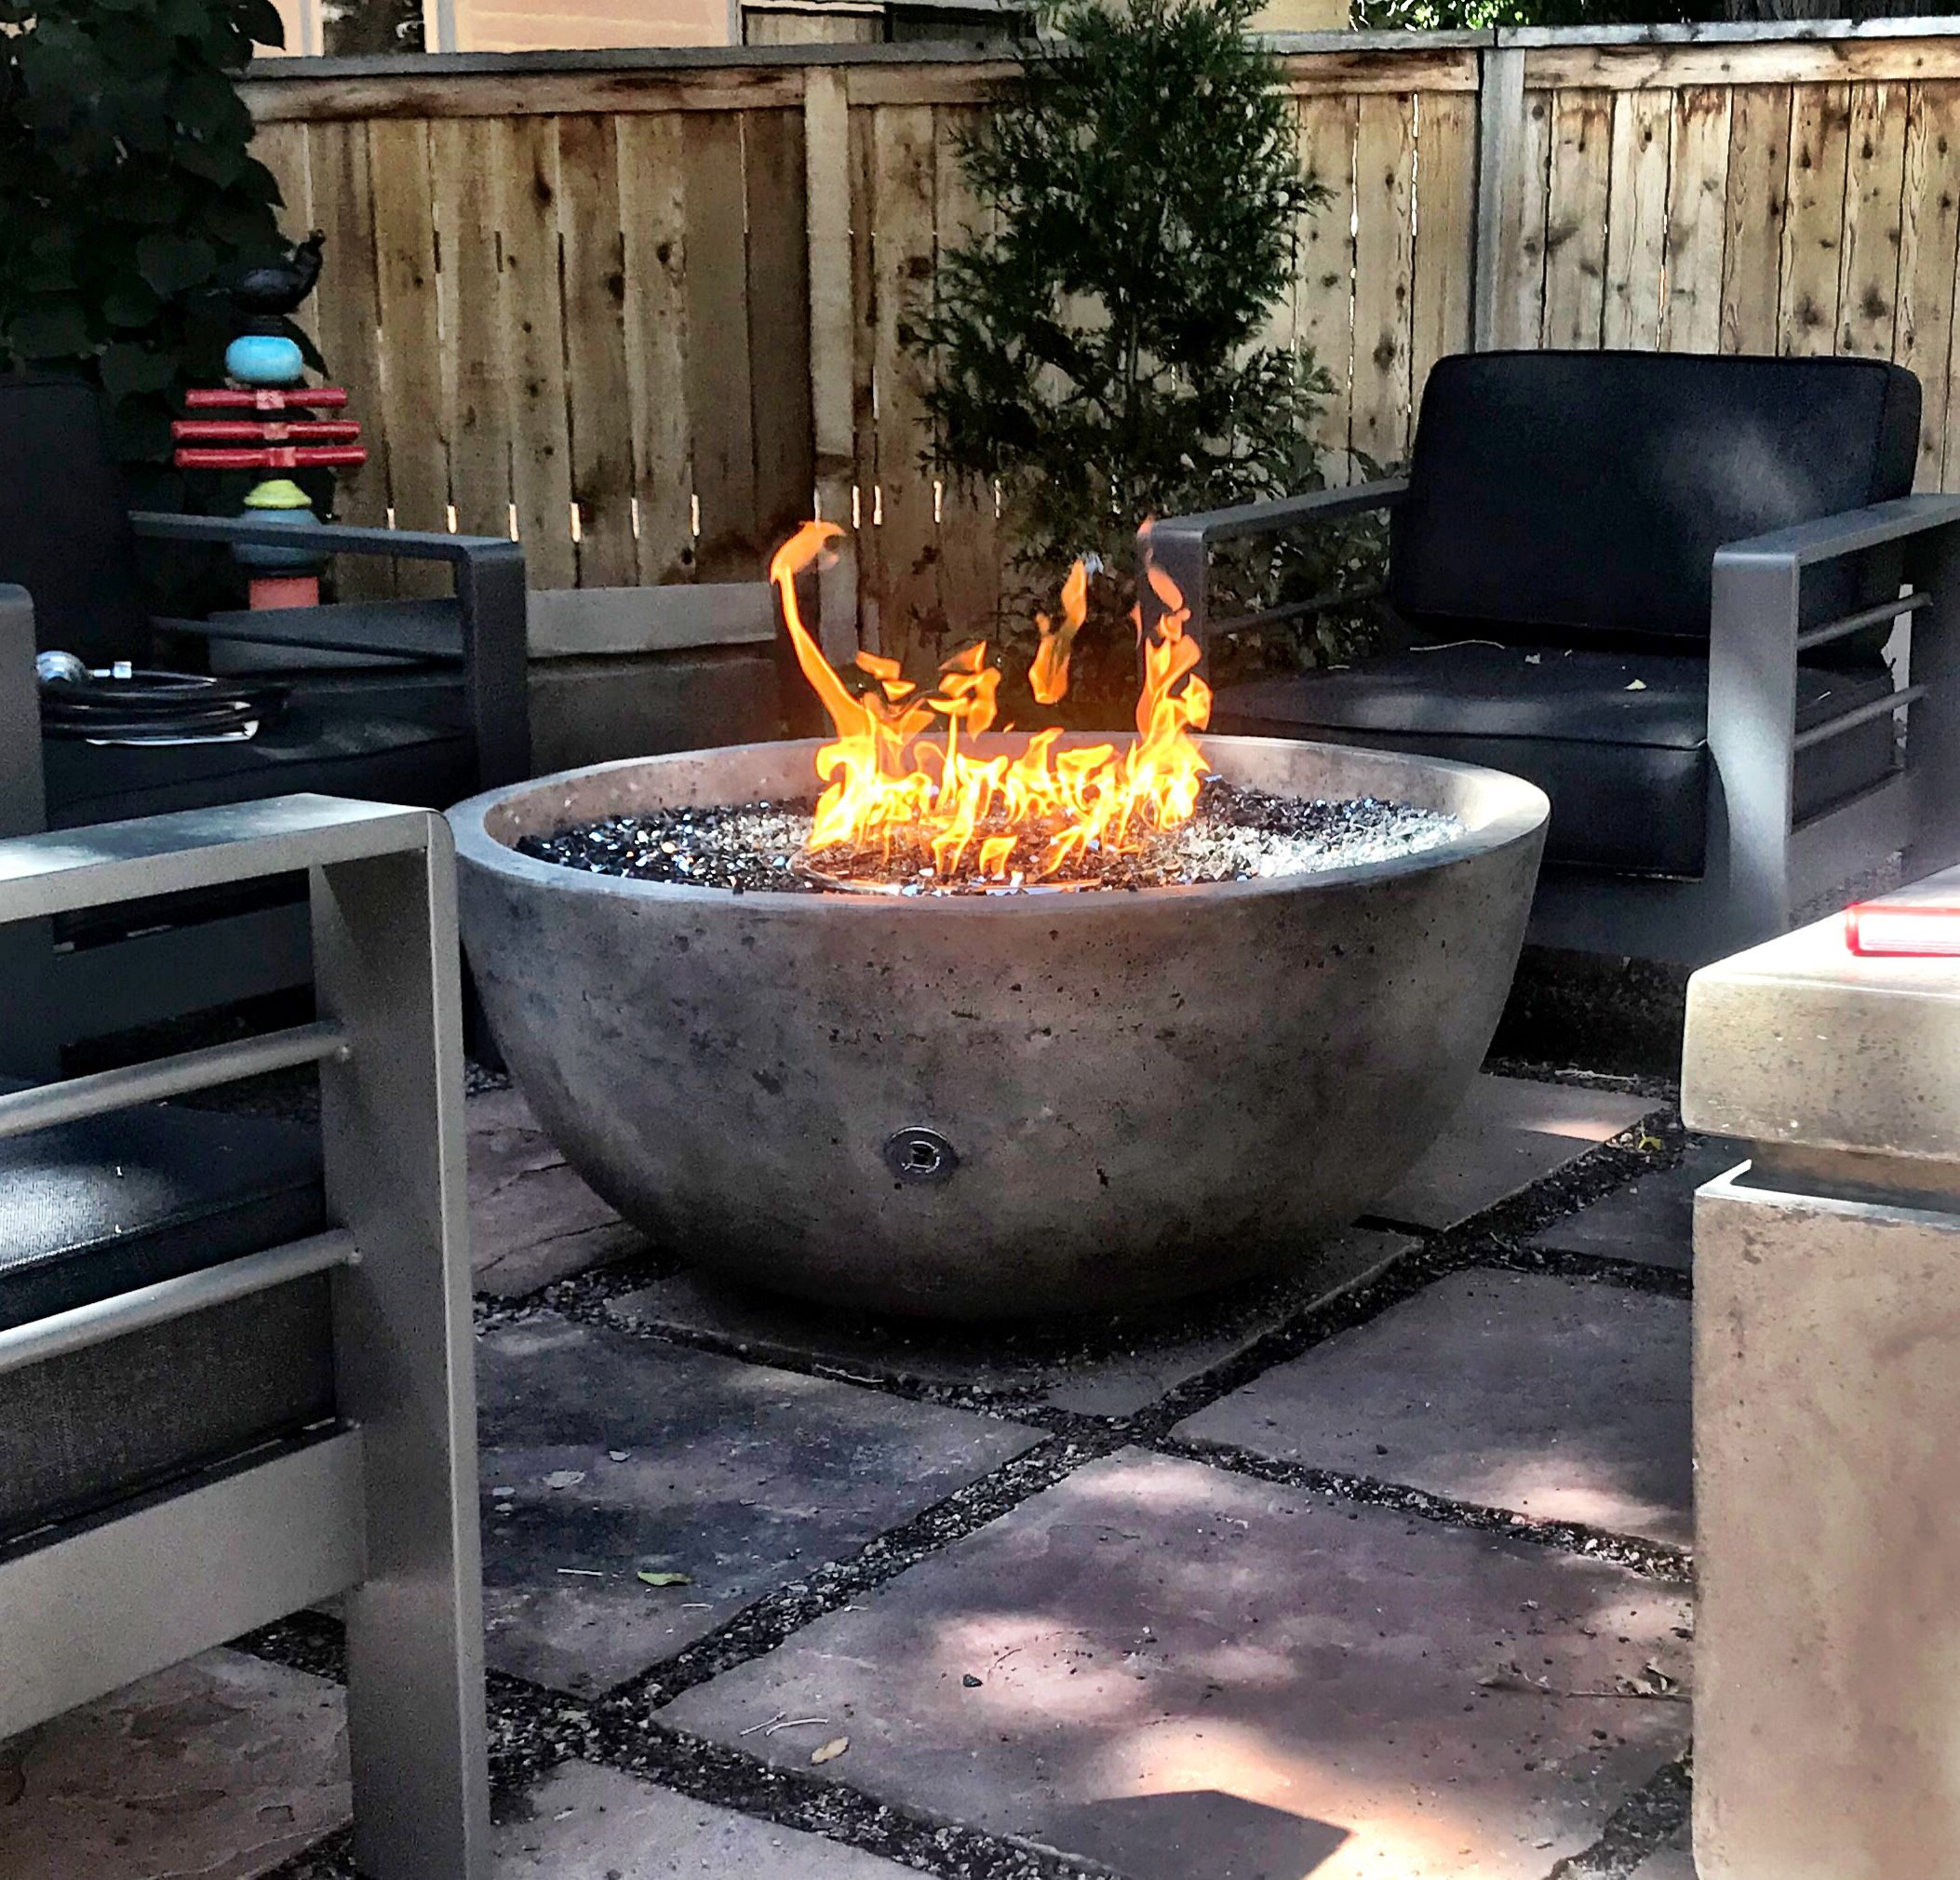 Large Round Propane Or Natural Gas Fire Bowls Gas Fire Pits Outdoor Fire Pit Backyard Diy Gas Fire Pit